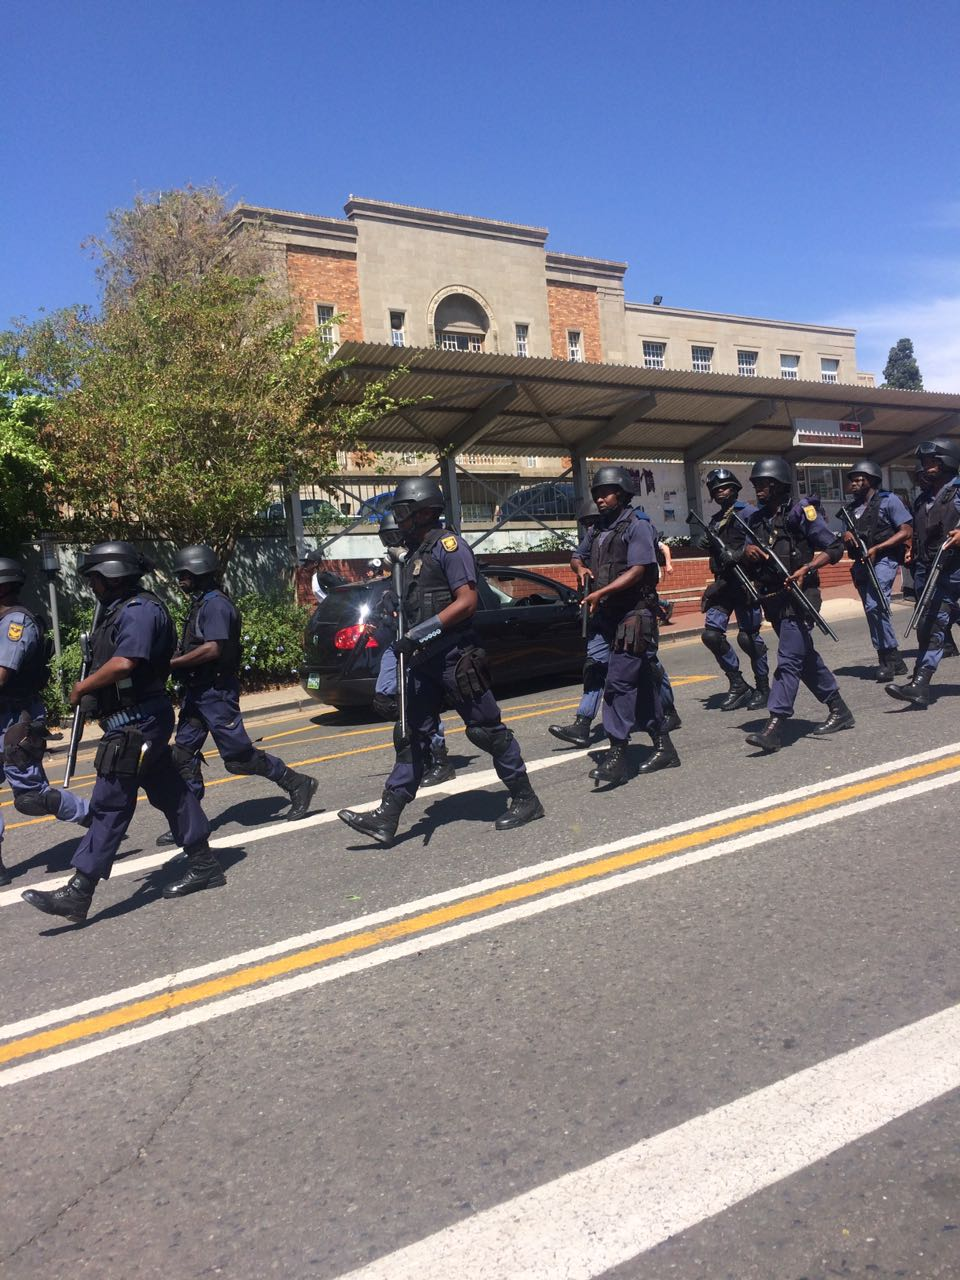 #FeesMustFall Week 4 day 2 – A student's diary